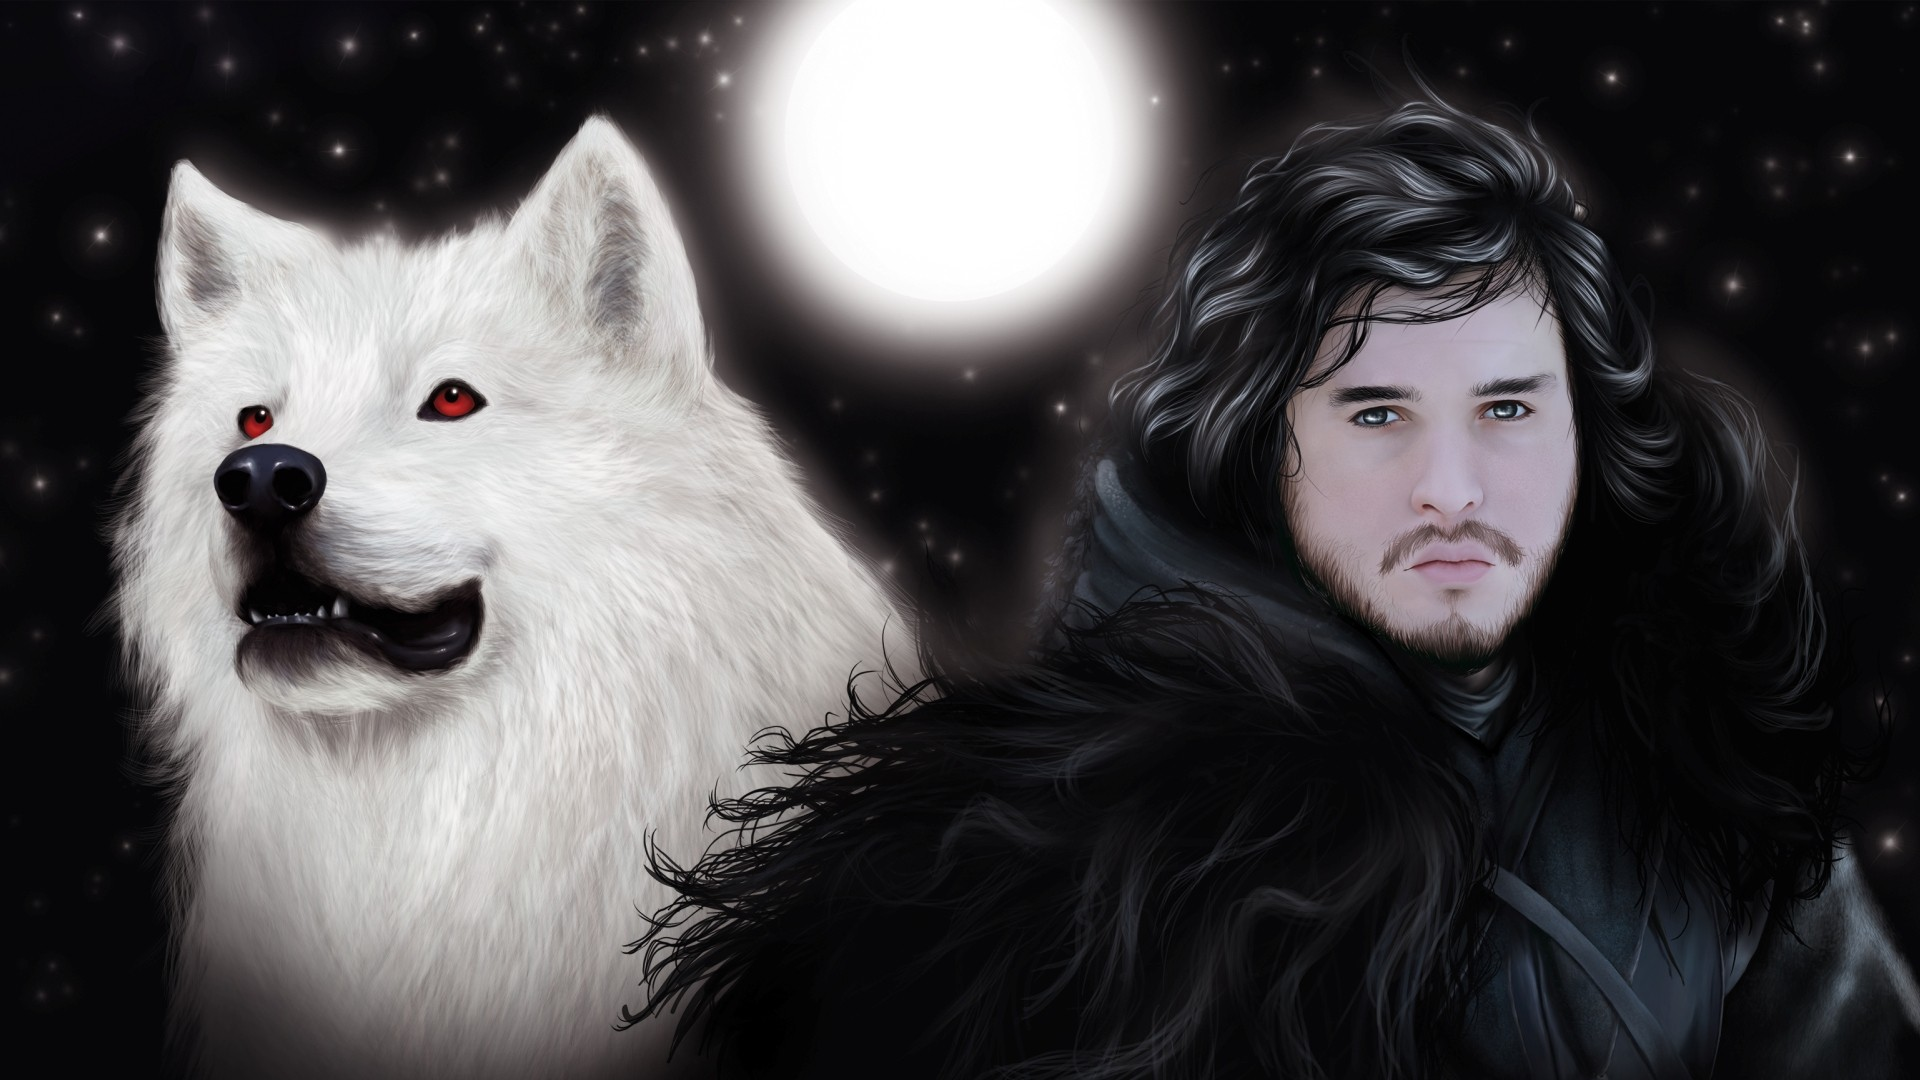 Artwork Game Of Thrones Jon Snow Wolves Wallpaper 1920x1080 218001